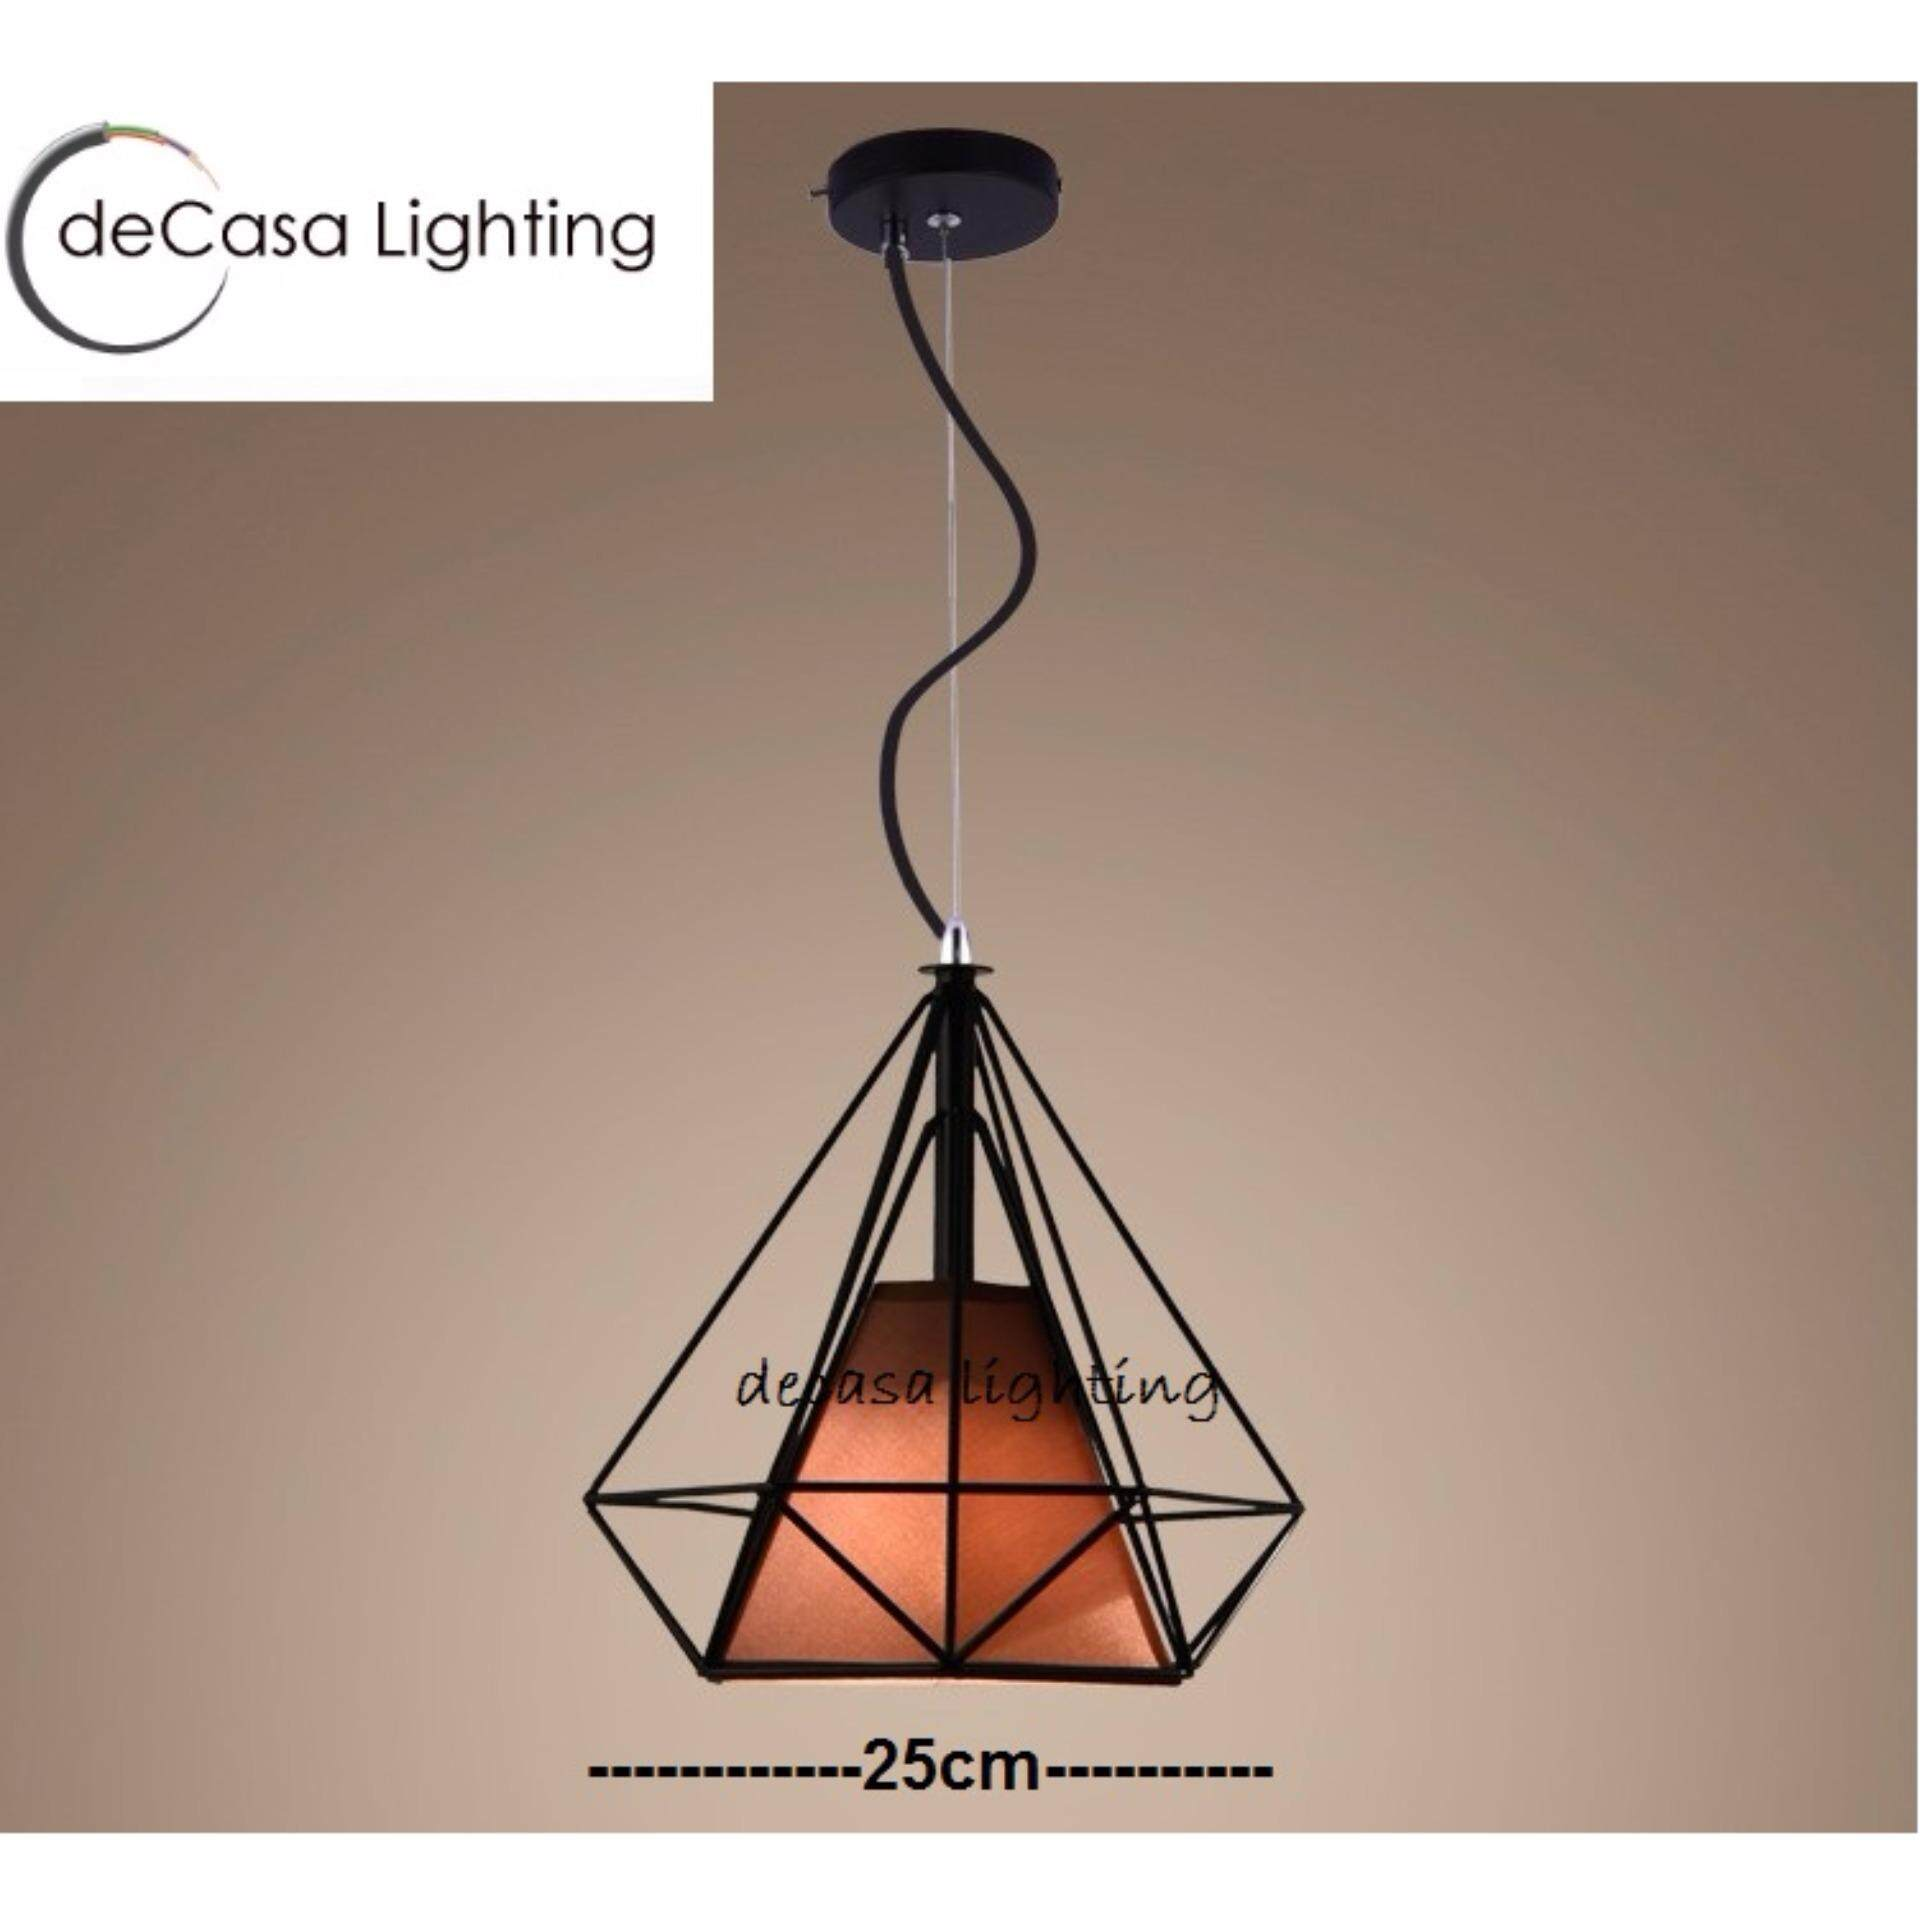 25cm Loft Ceiling Hanging Decorative Light Triangle Shape Ceiling Light Lamp Shade Hanging Light( Plain or White or Brown) (LY-TY201-25)